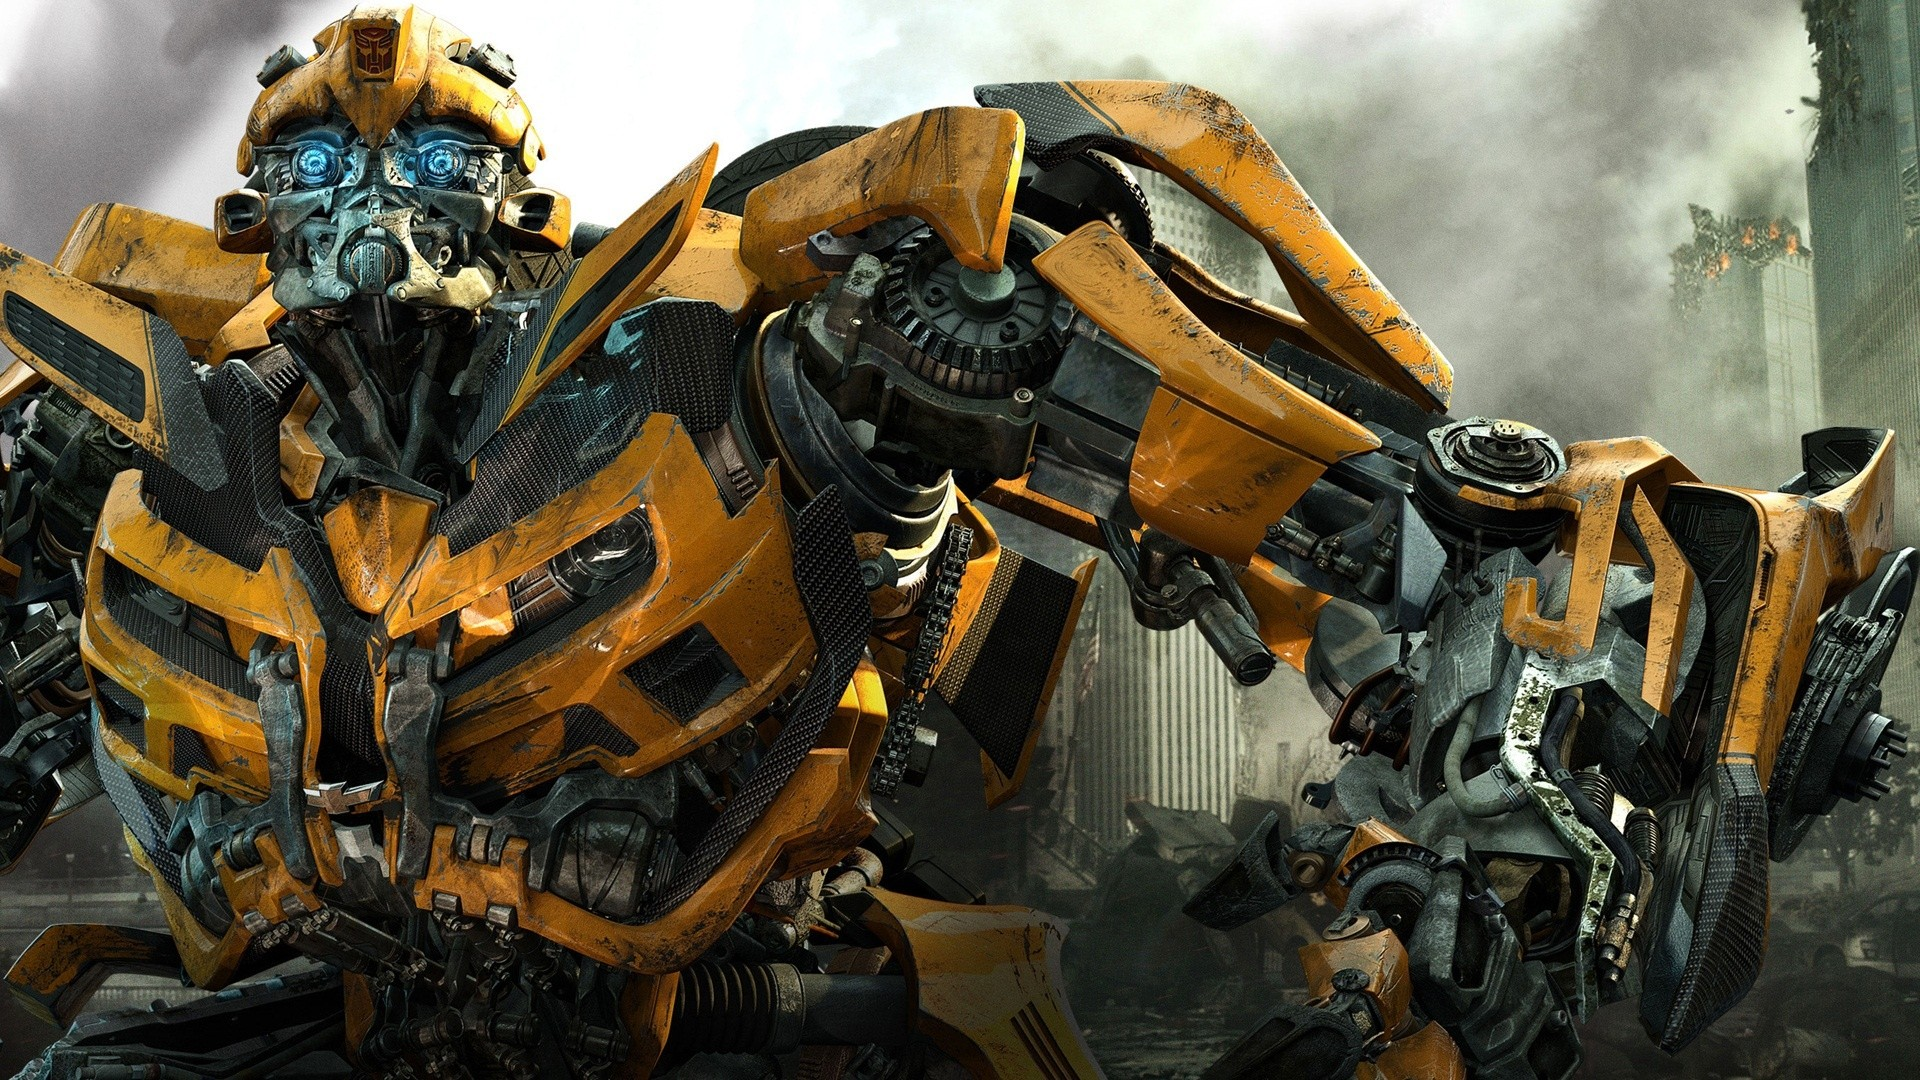 Transformers Wallpapers | Best Wallpapers